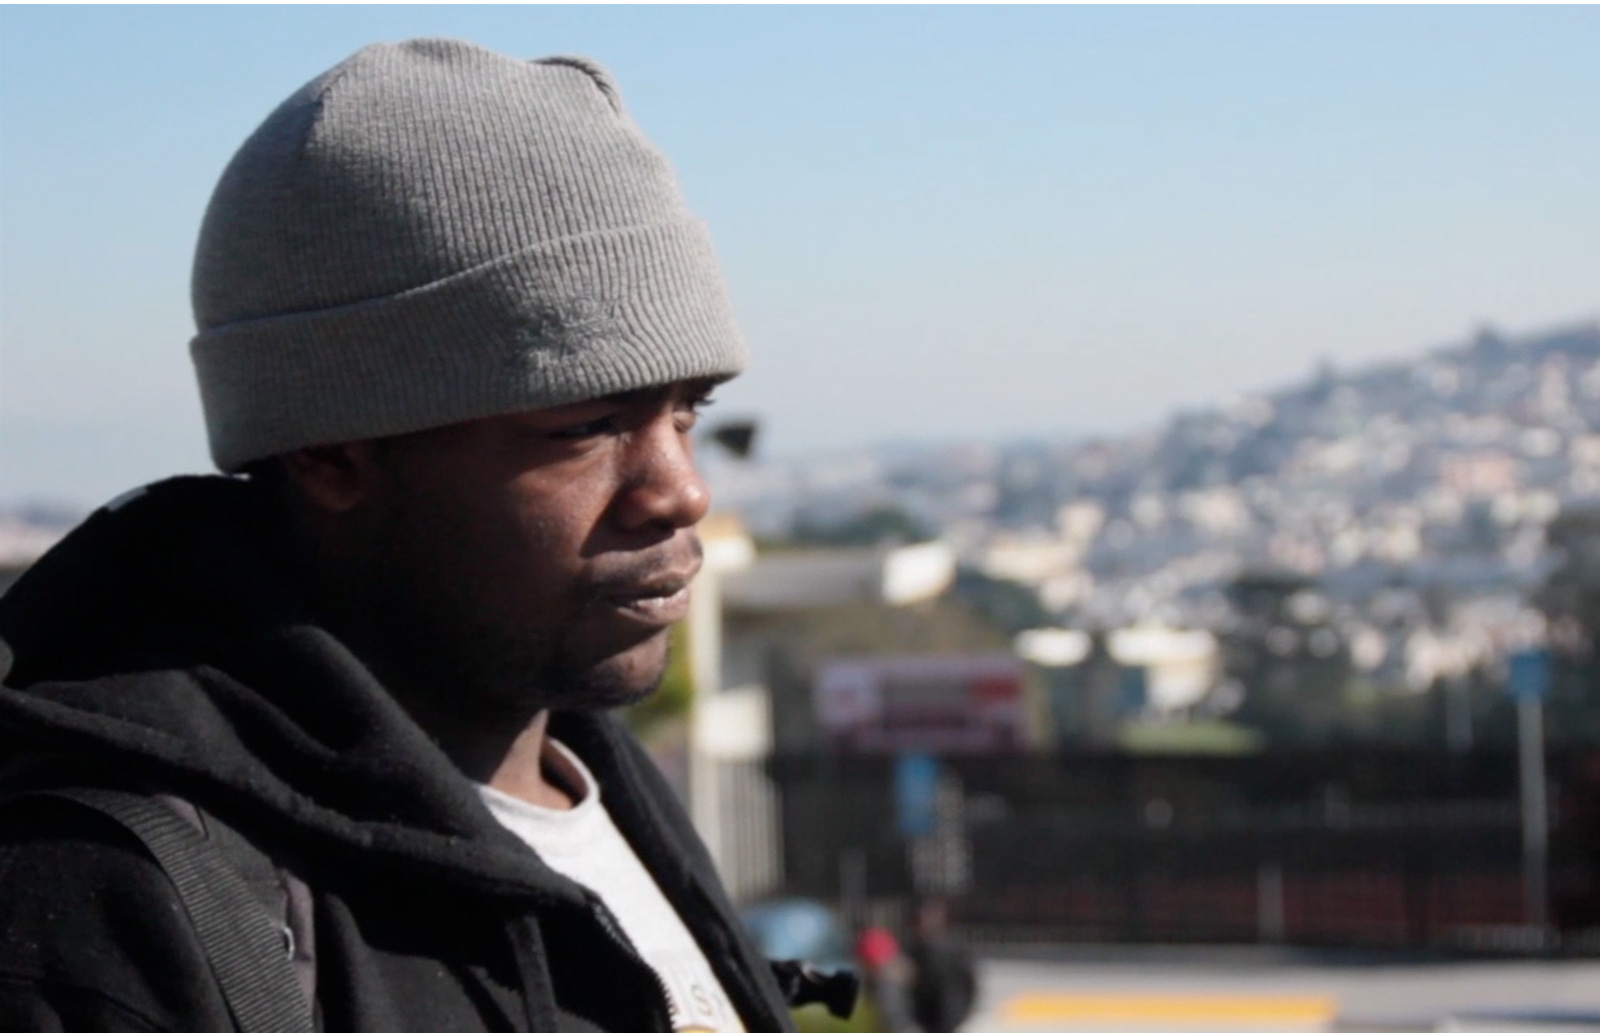 VIDEO: When Being Homeless Starts at 16